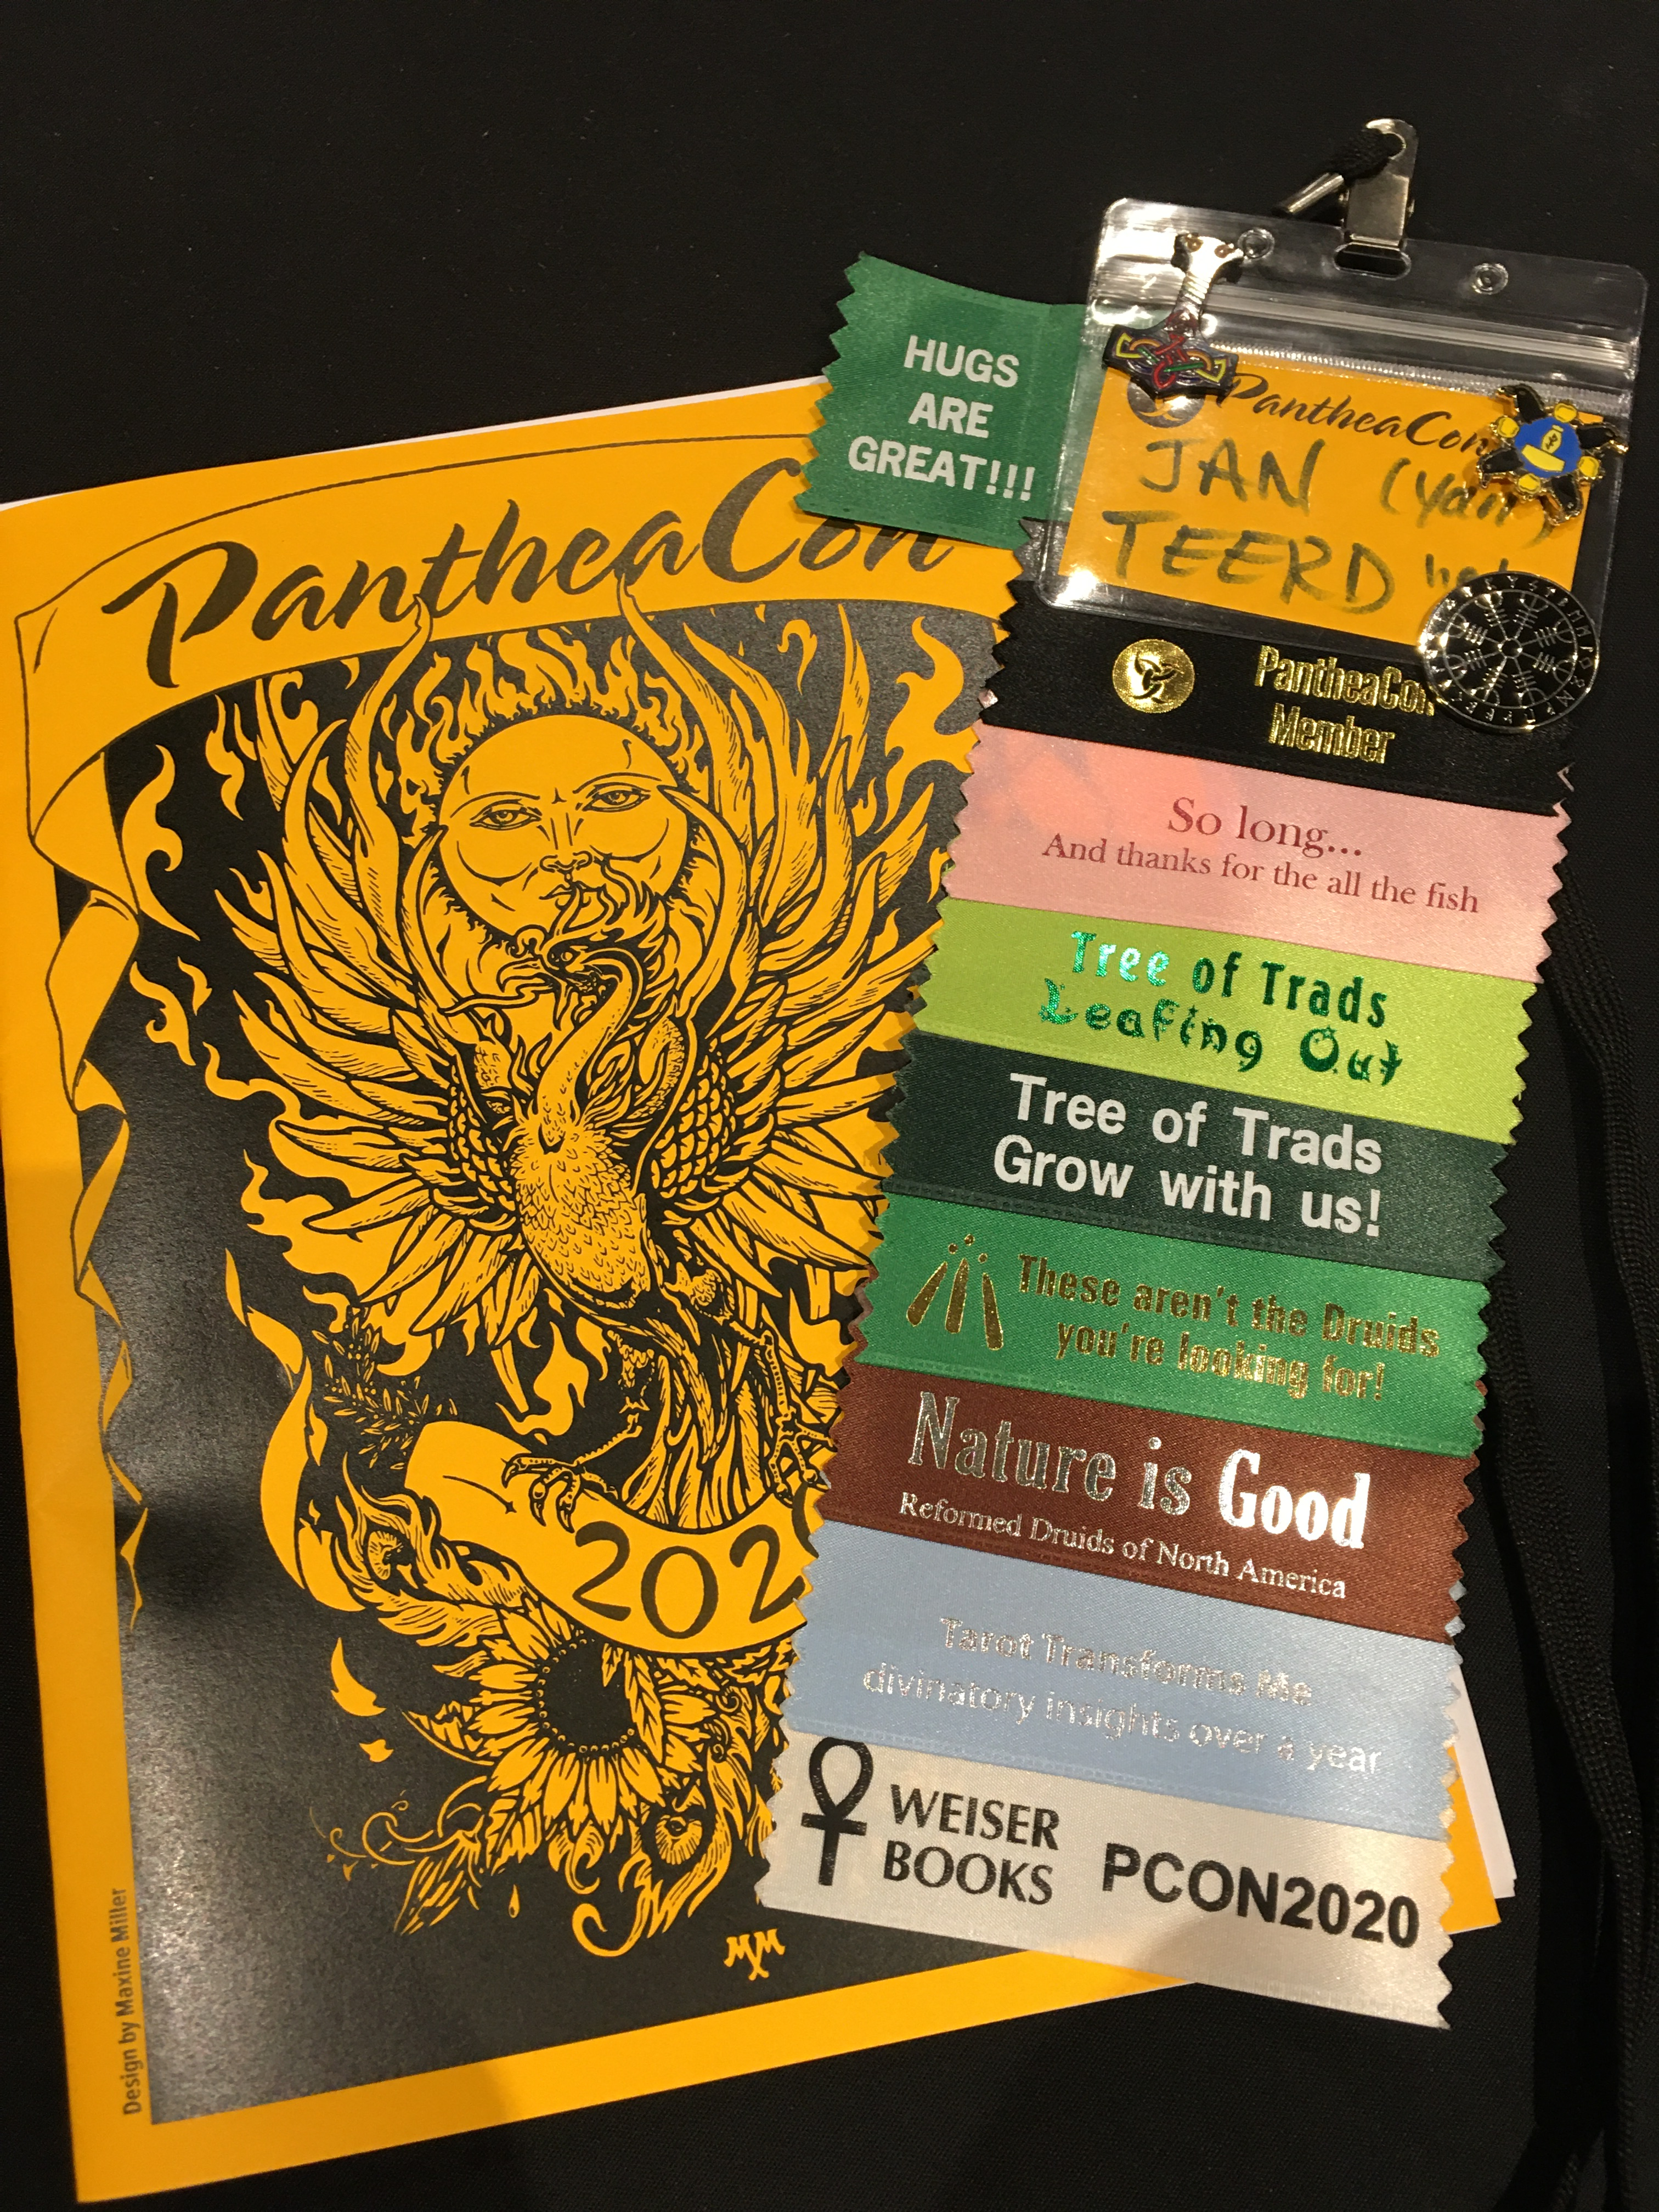 pantheacon program and ribbons